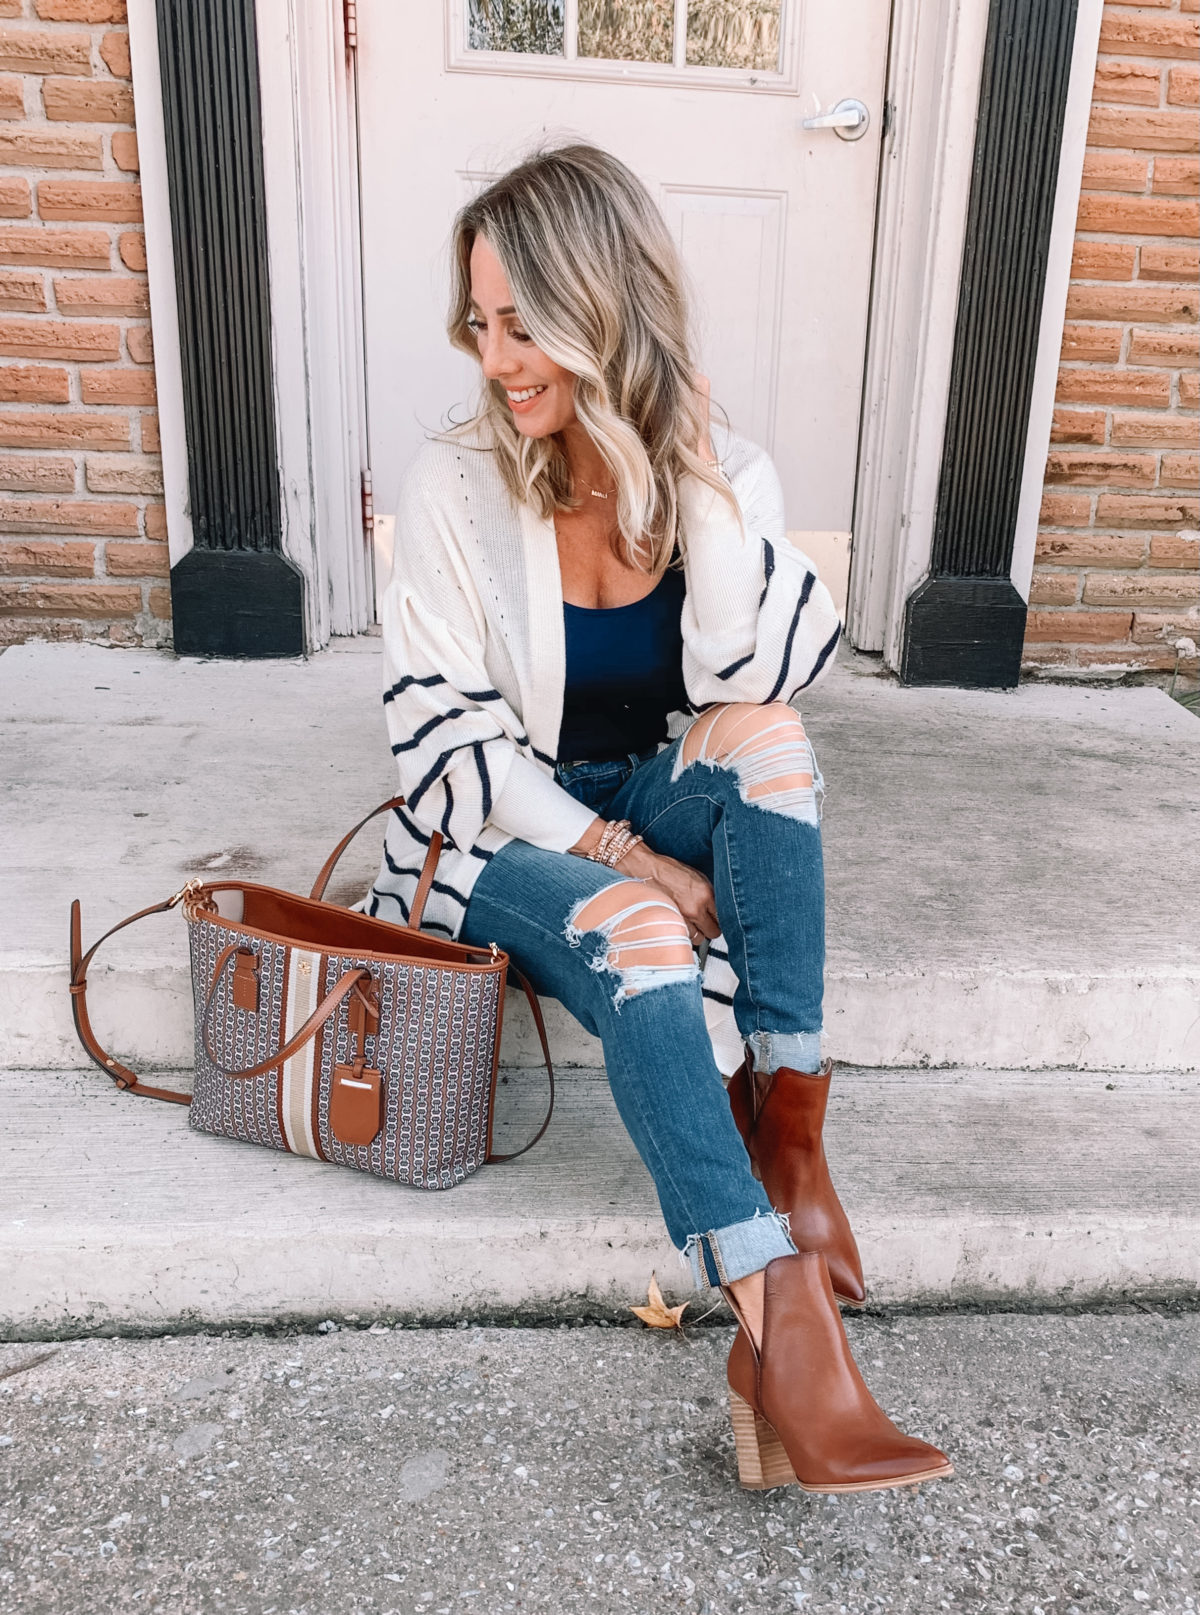 Outfits Lately, Bodysuit, Cardigan, Jeans, Booties, Tote